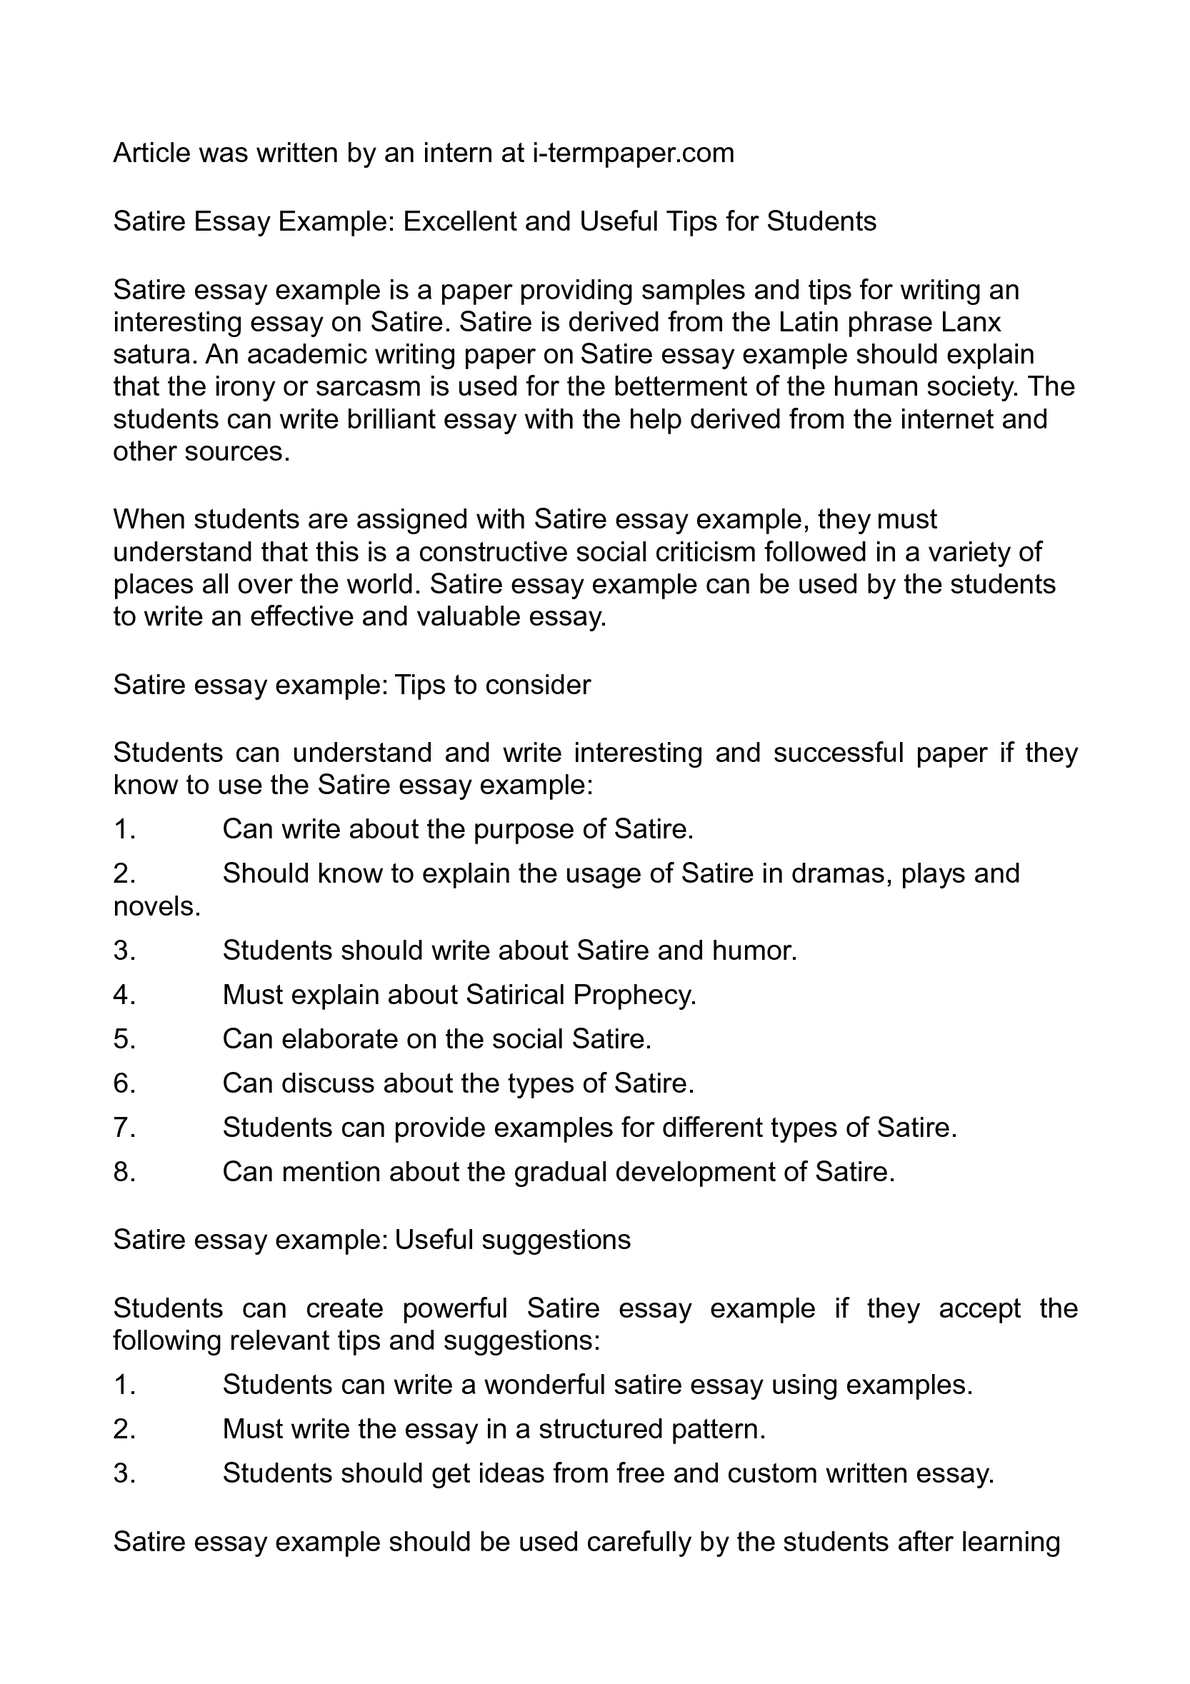 Edward Said States Essay Satirical Essays Topics Satirical Essay Topics Gxart Example Of Satirical Essay  Topics Gxart Orgexamples Of Satire Discursive Essay Structure also Essay On Eating Disorders Bless Me Ultima Essay Topics Satirical Essays Topics Satirical Essay  Narrative Essays On Love